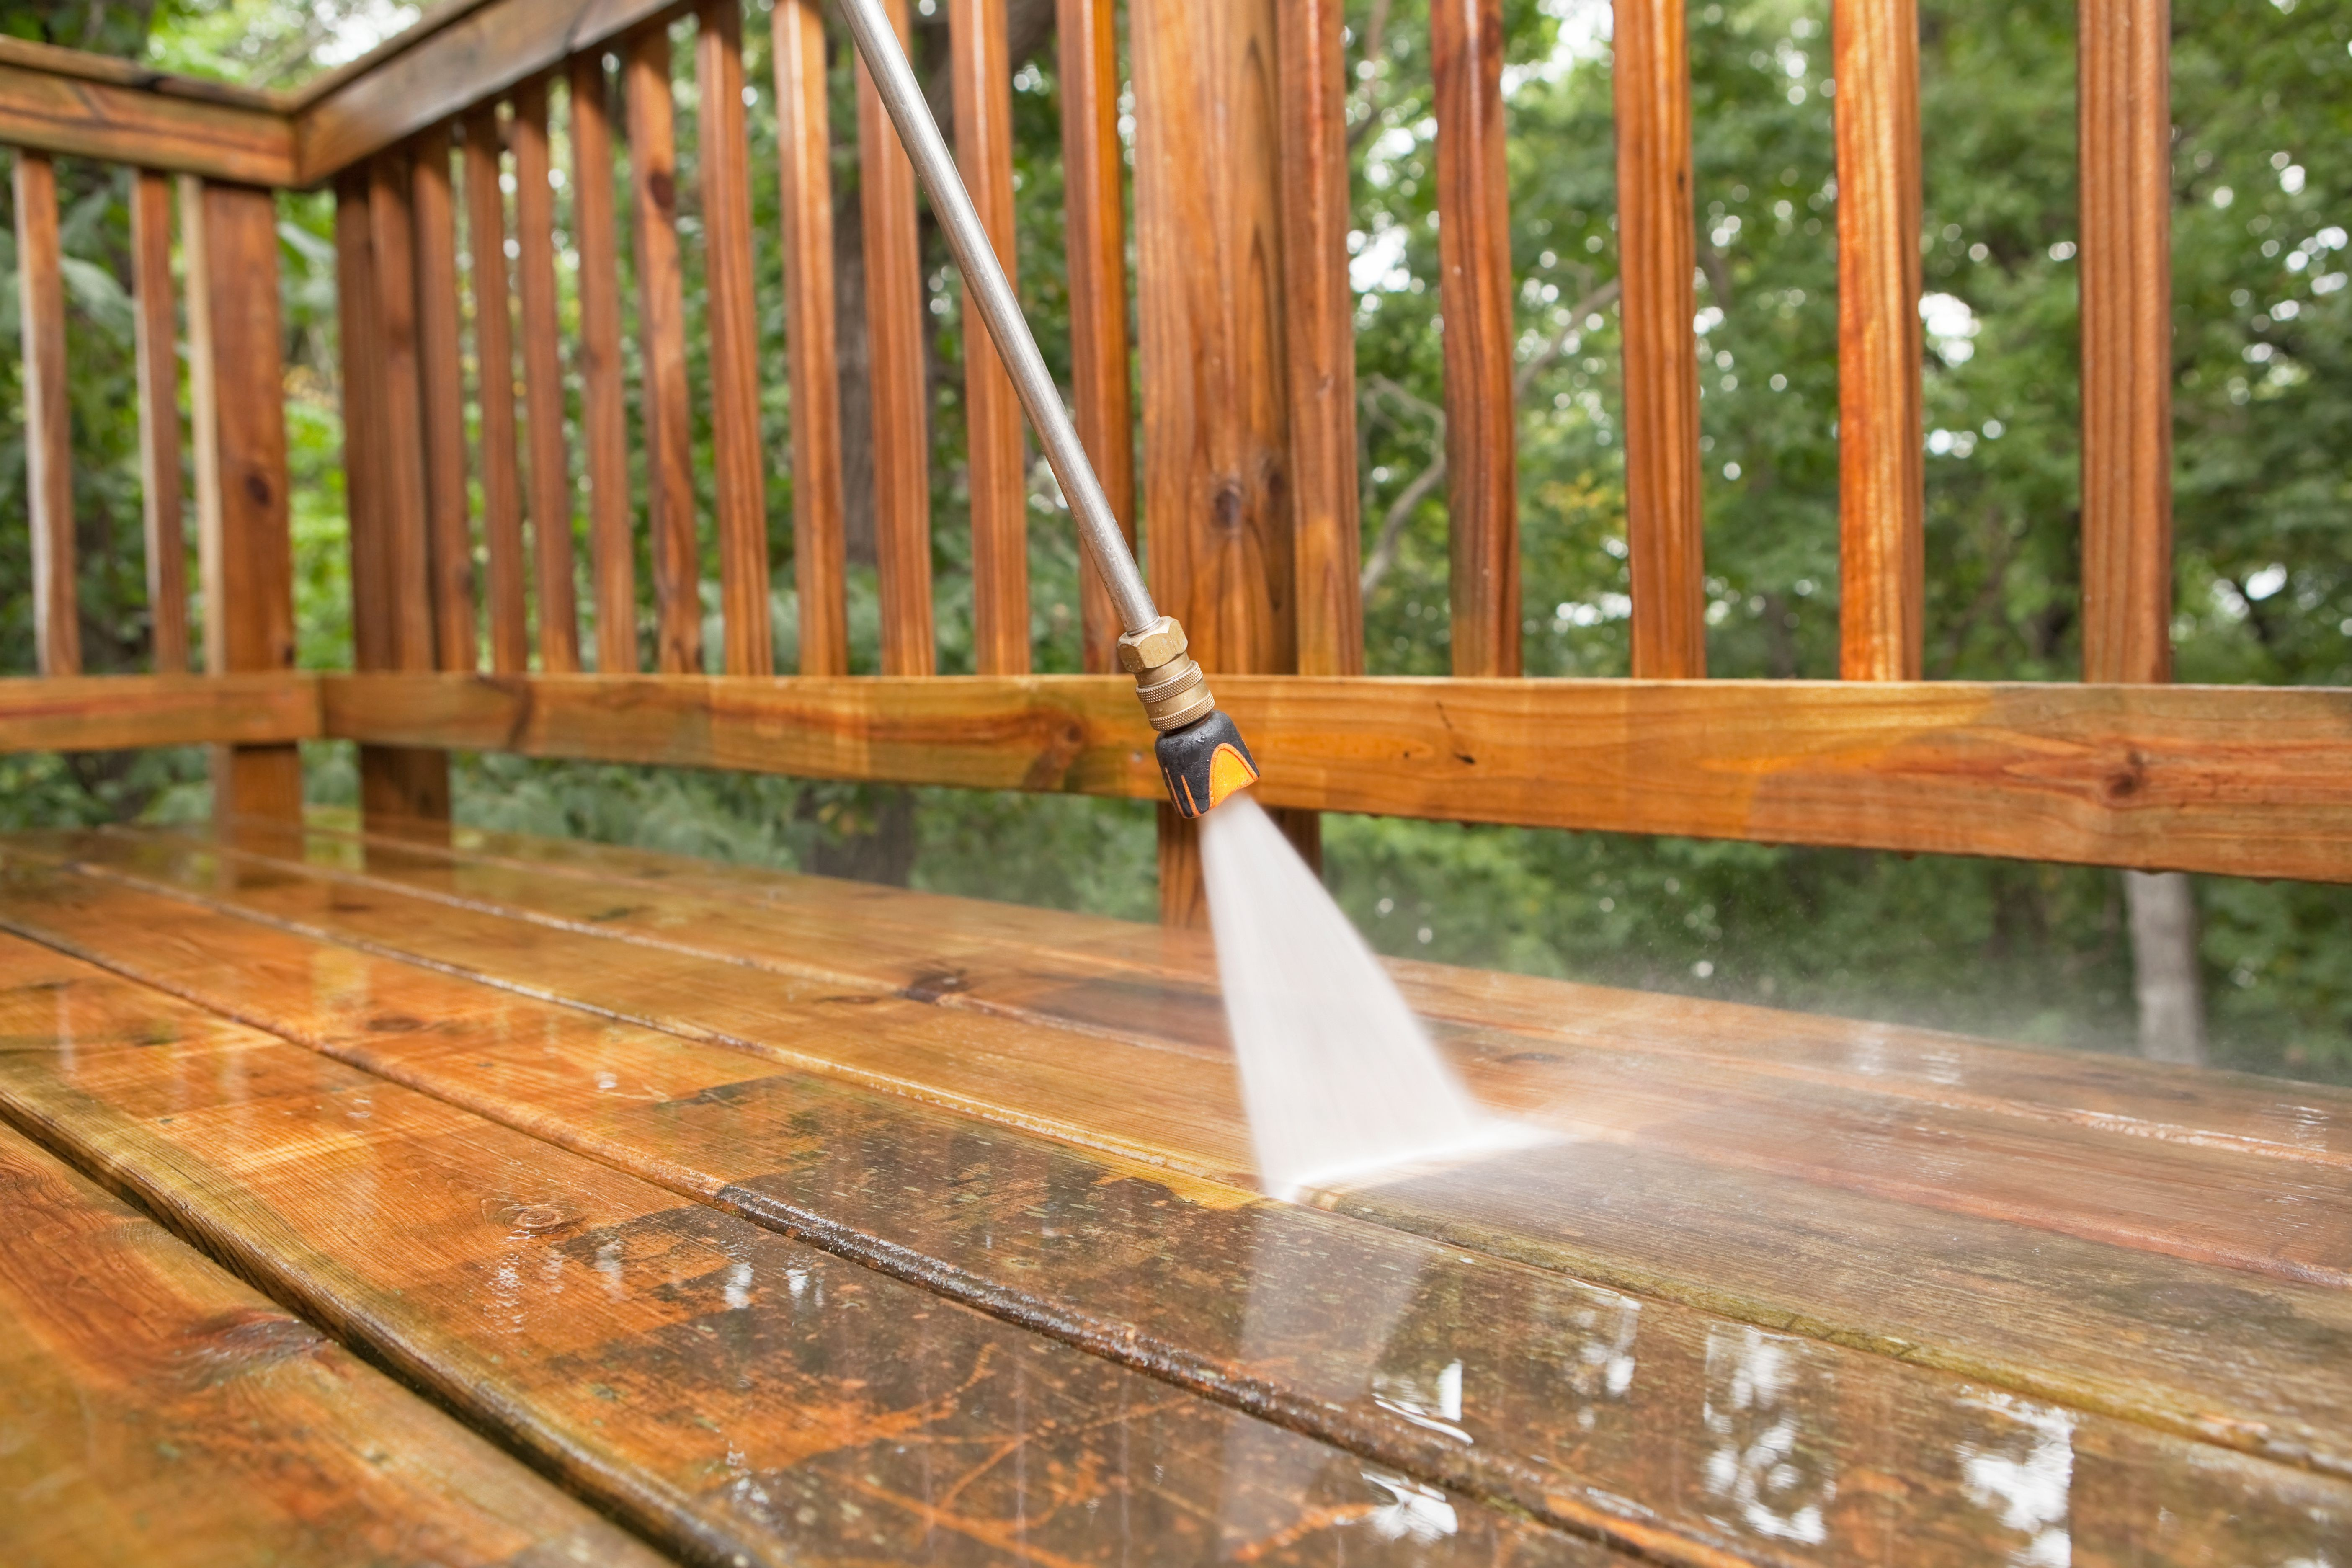 How To Power Wash Deck